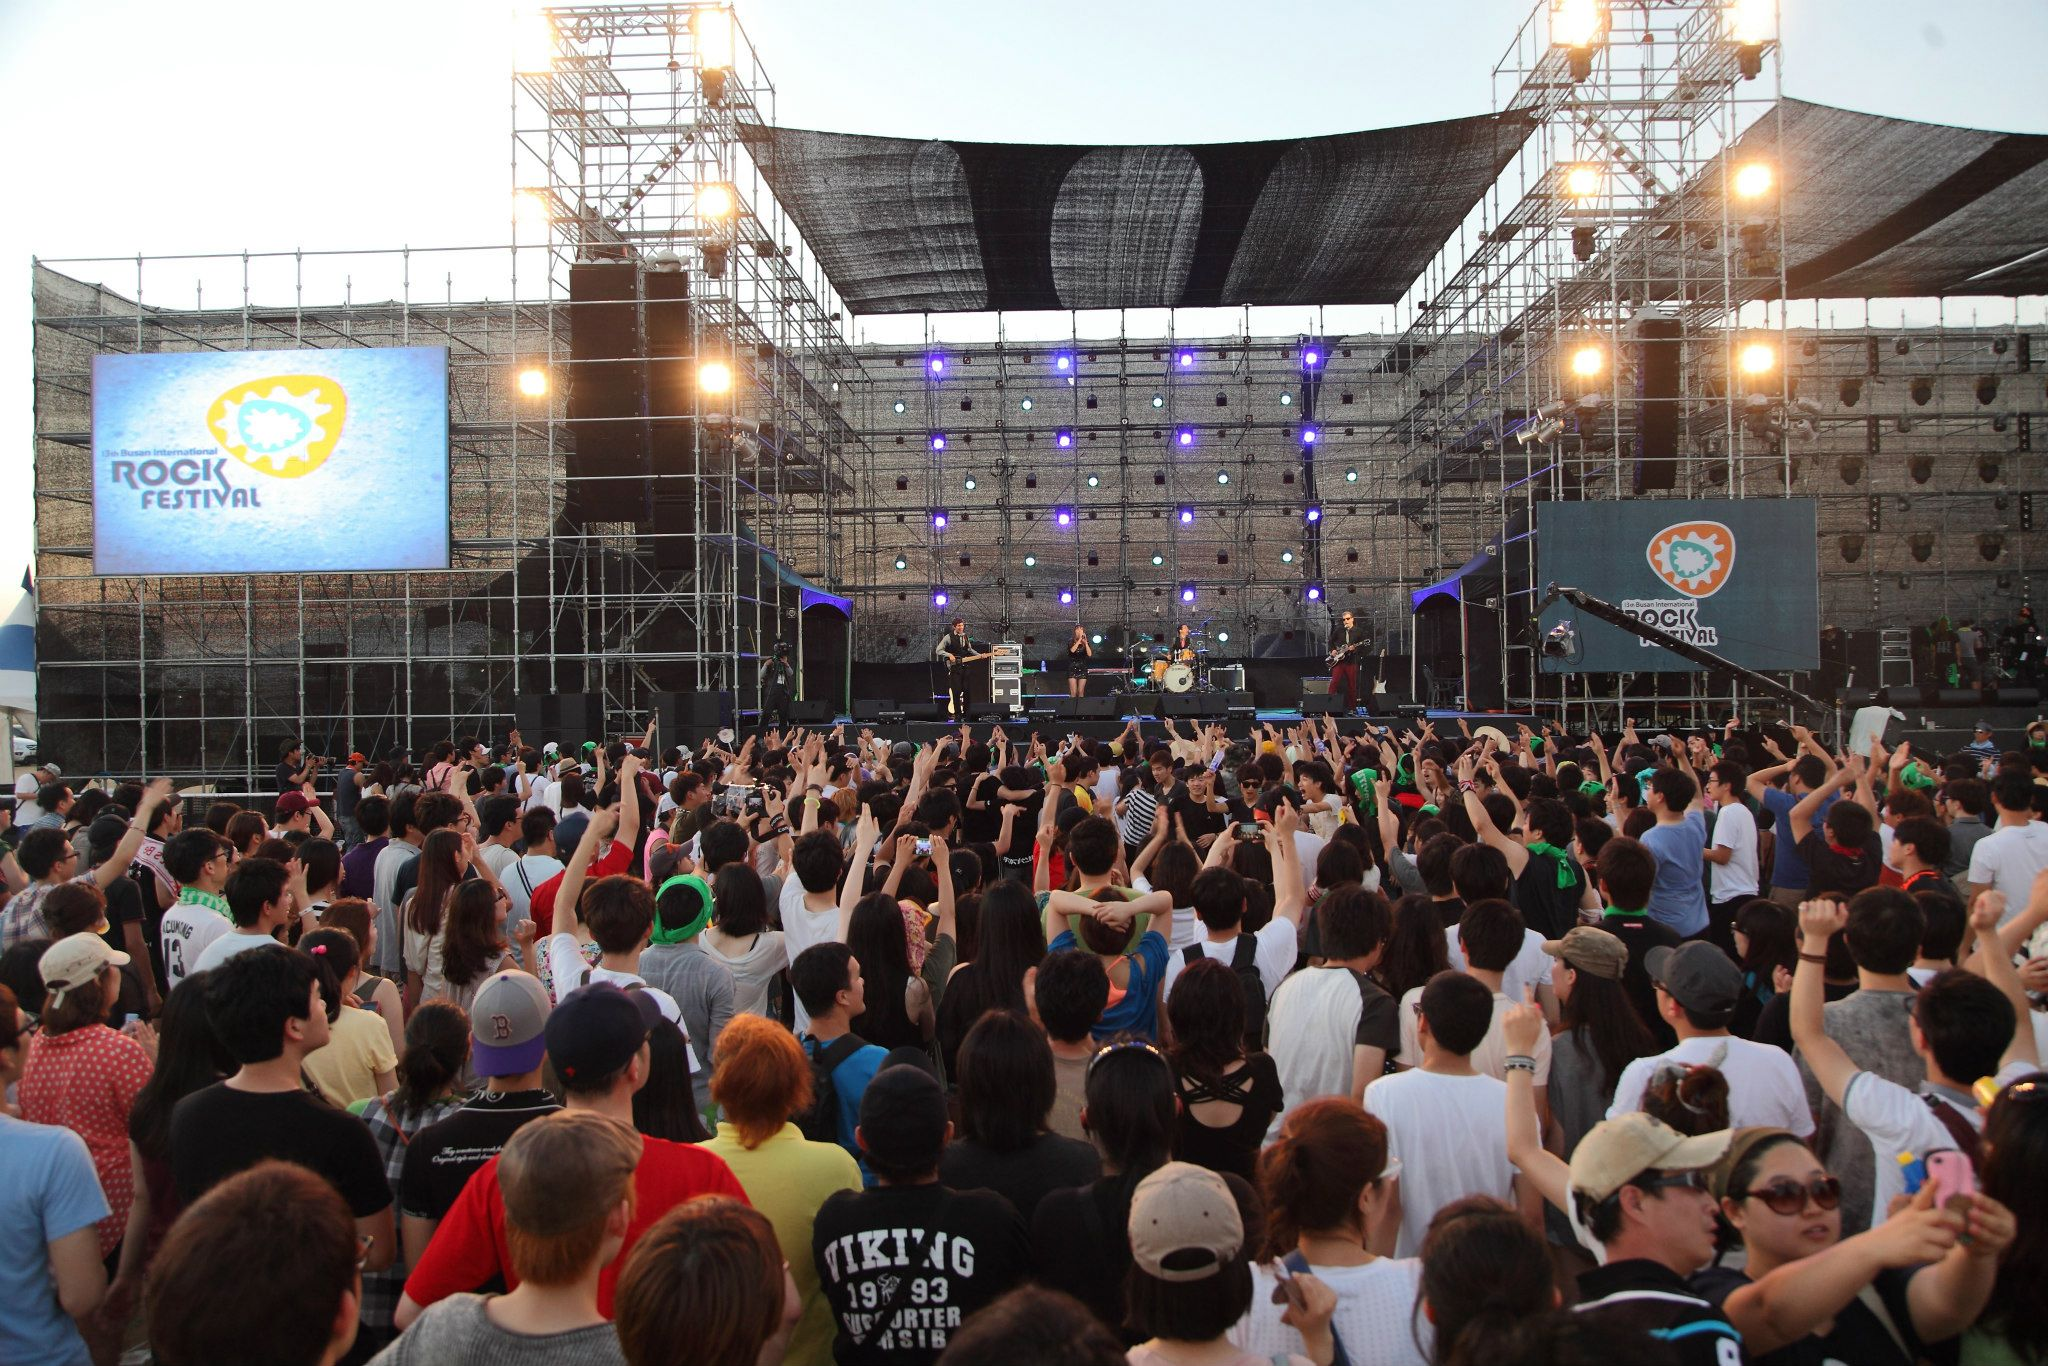 On stage at the Busan International Rock Festival in South Korea  (2012)